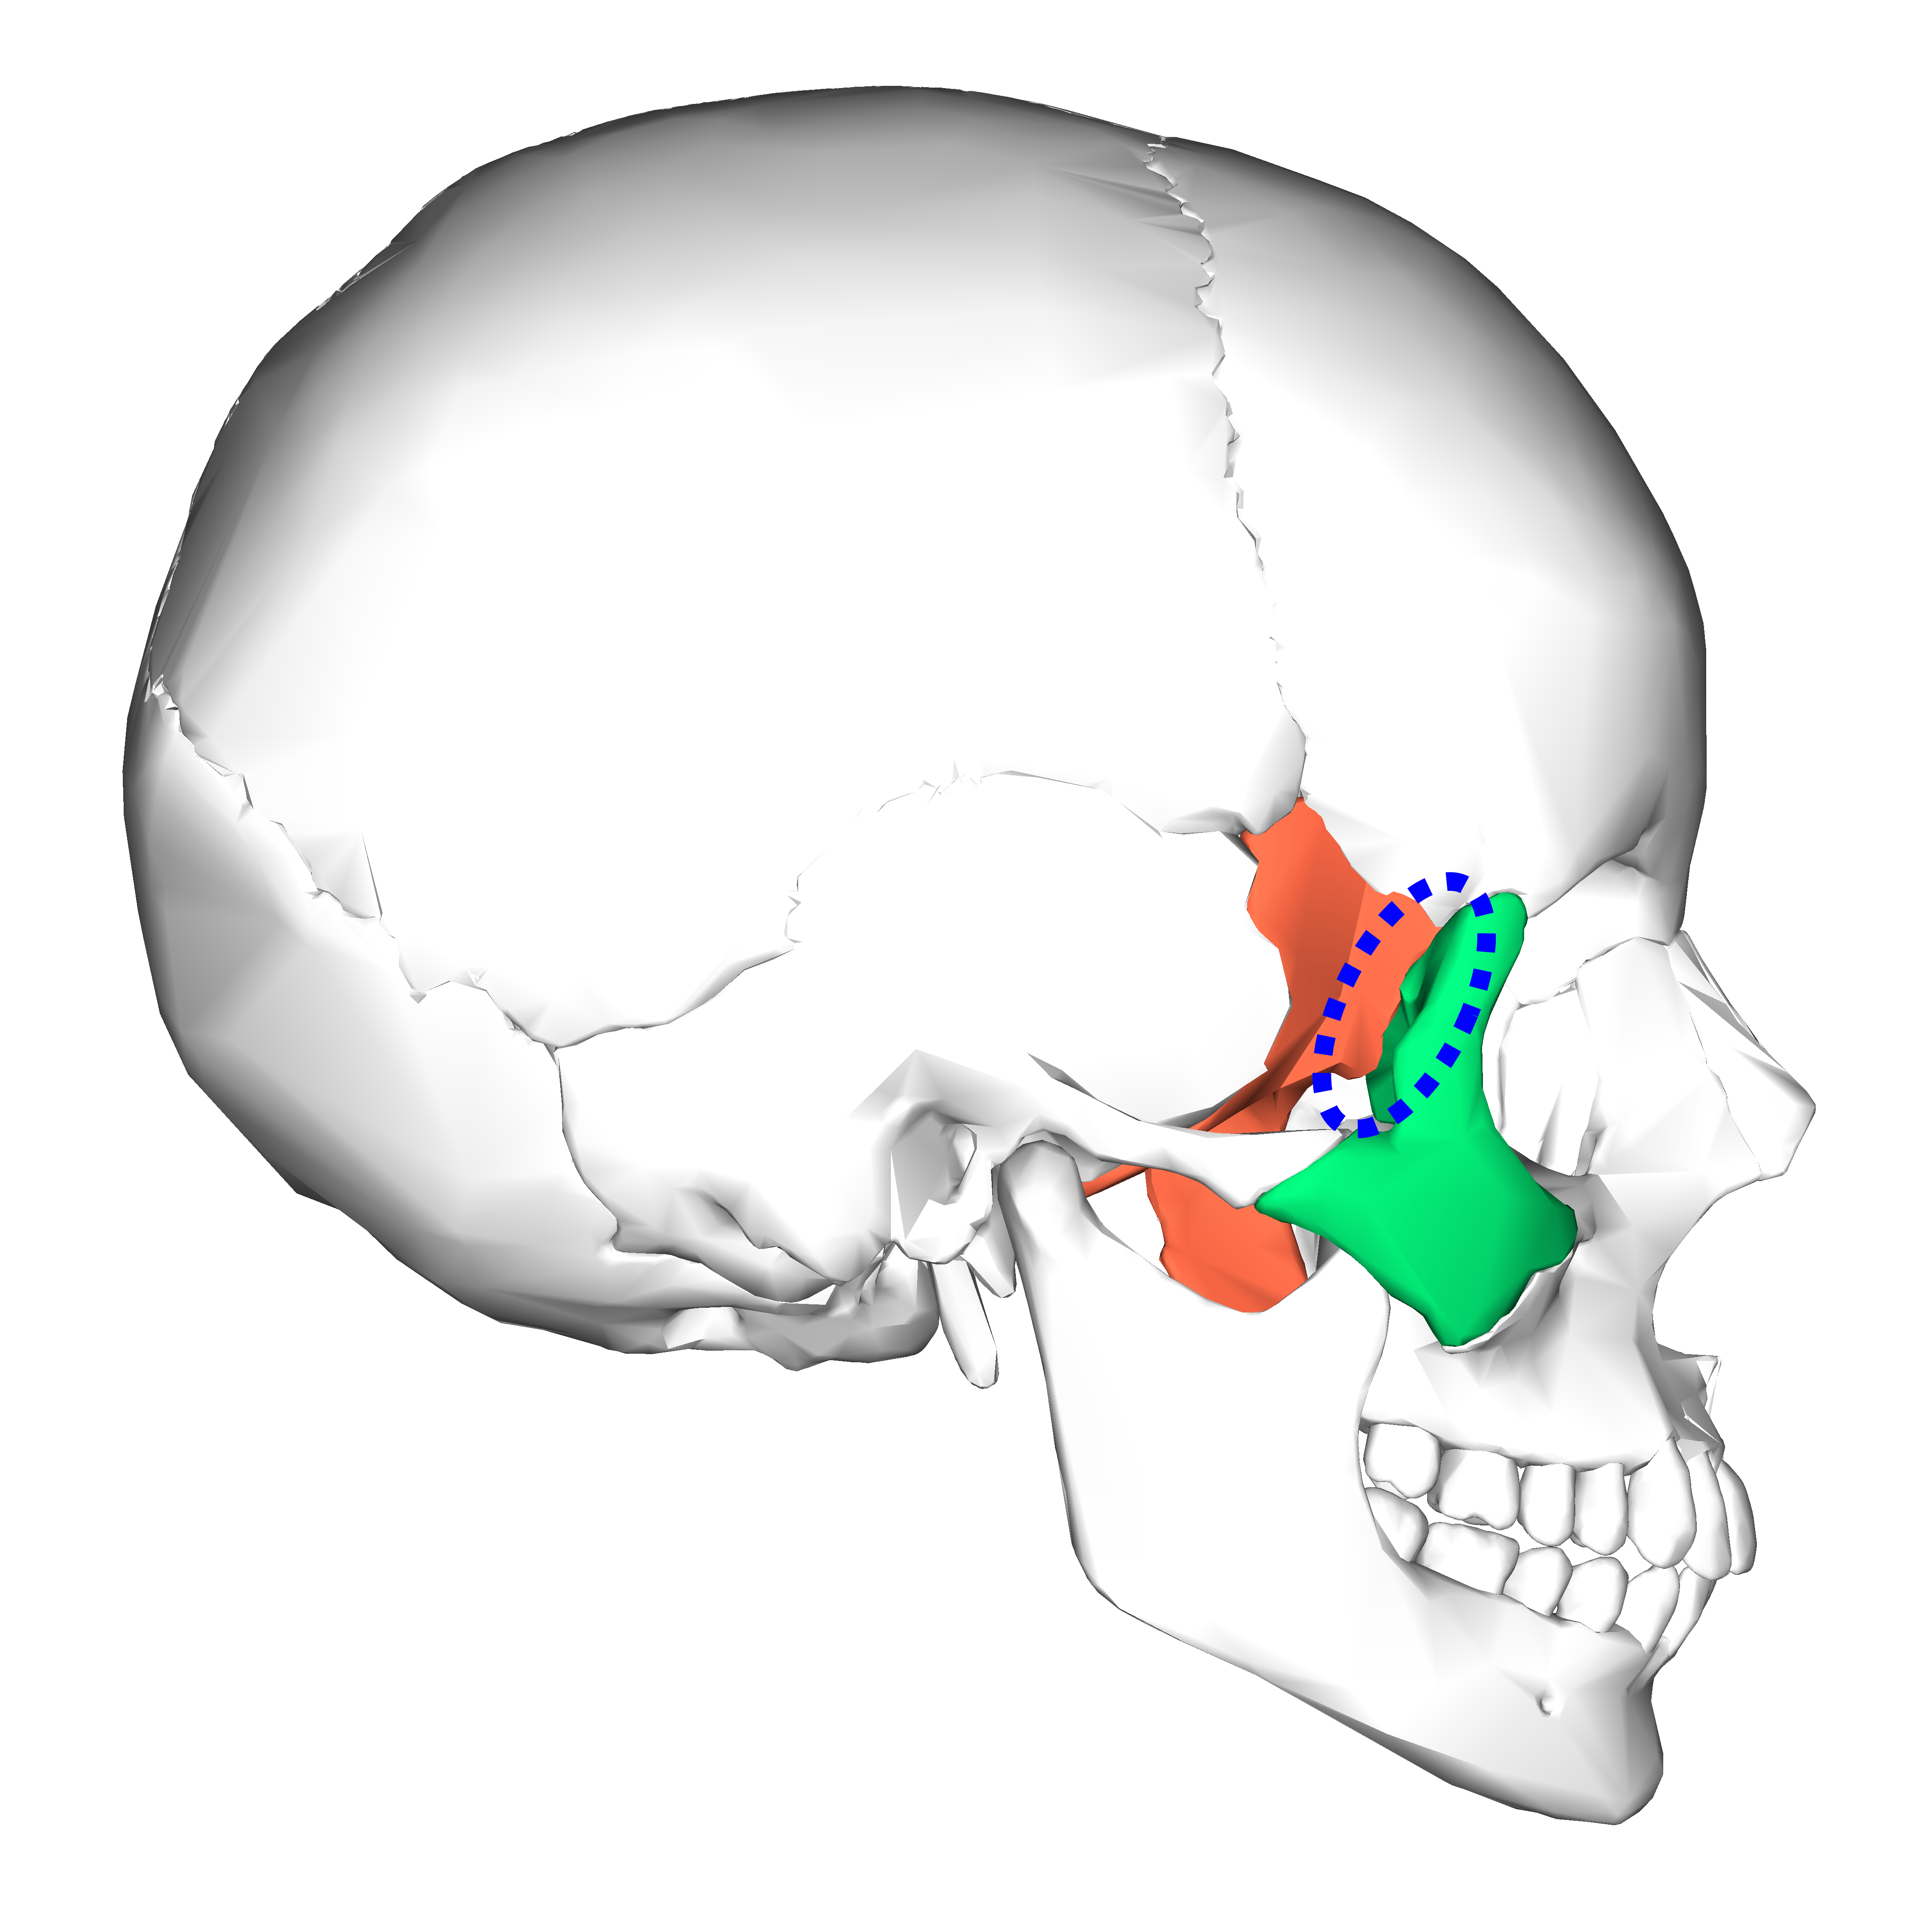 file:sphenoid bone and zygomatic bone - lateral view4, Sphenoid